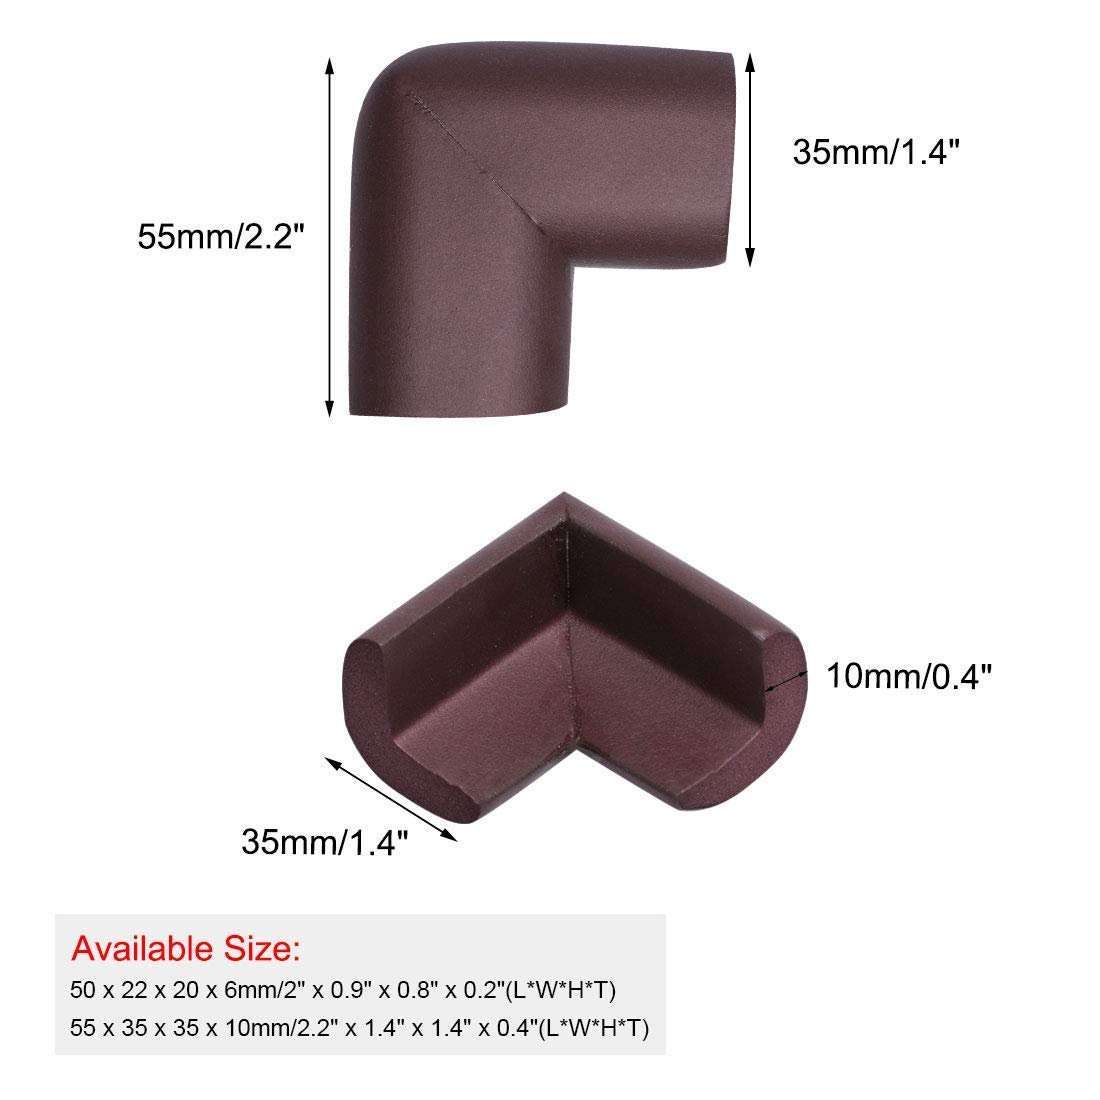 Amazon.com: ZCHXD 8 Pack Foam Furniture Table Edge Cover ...